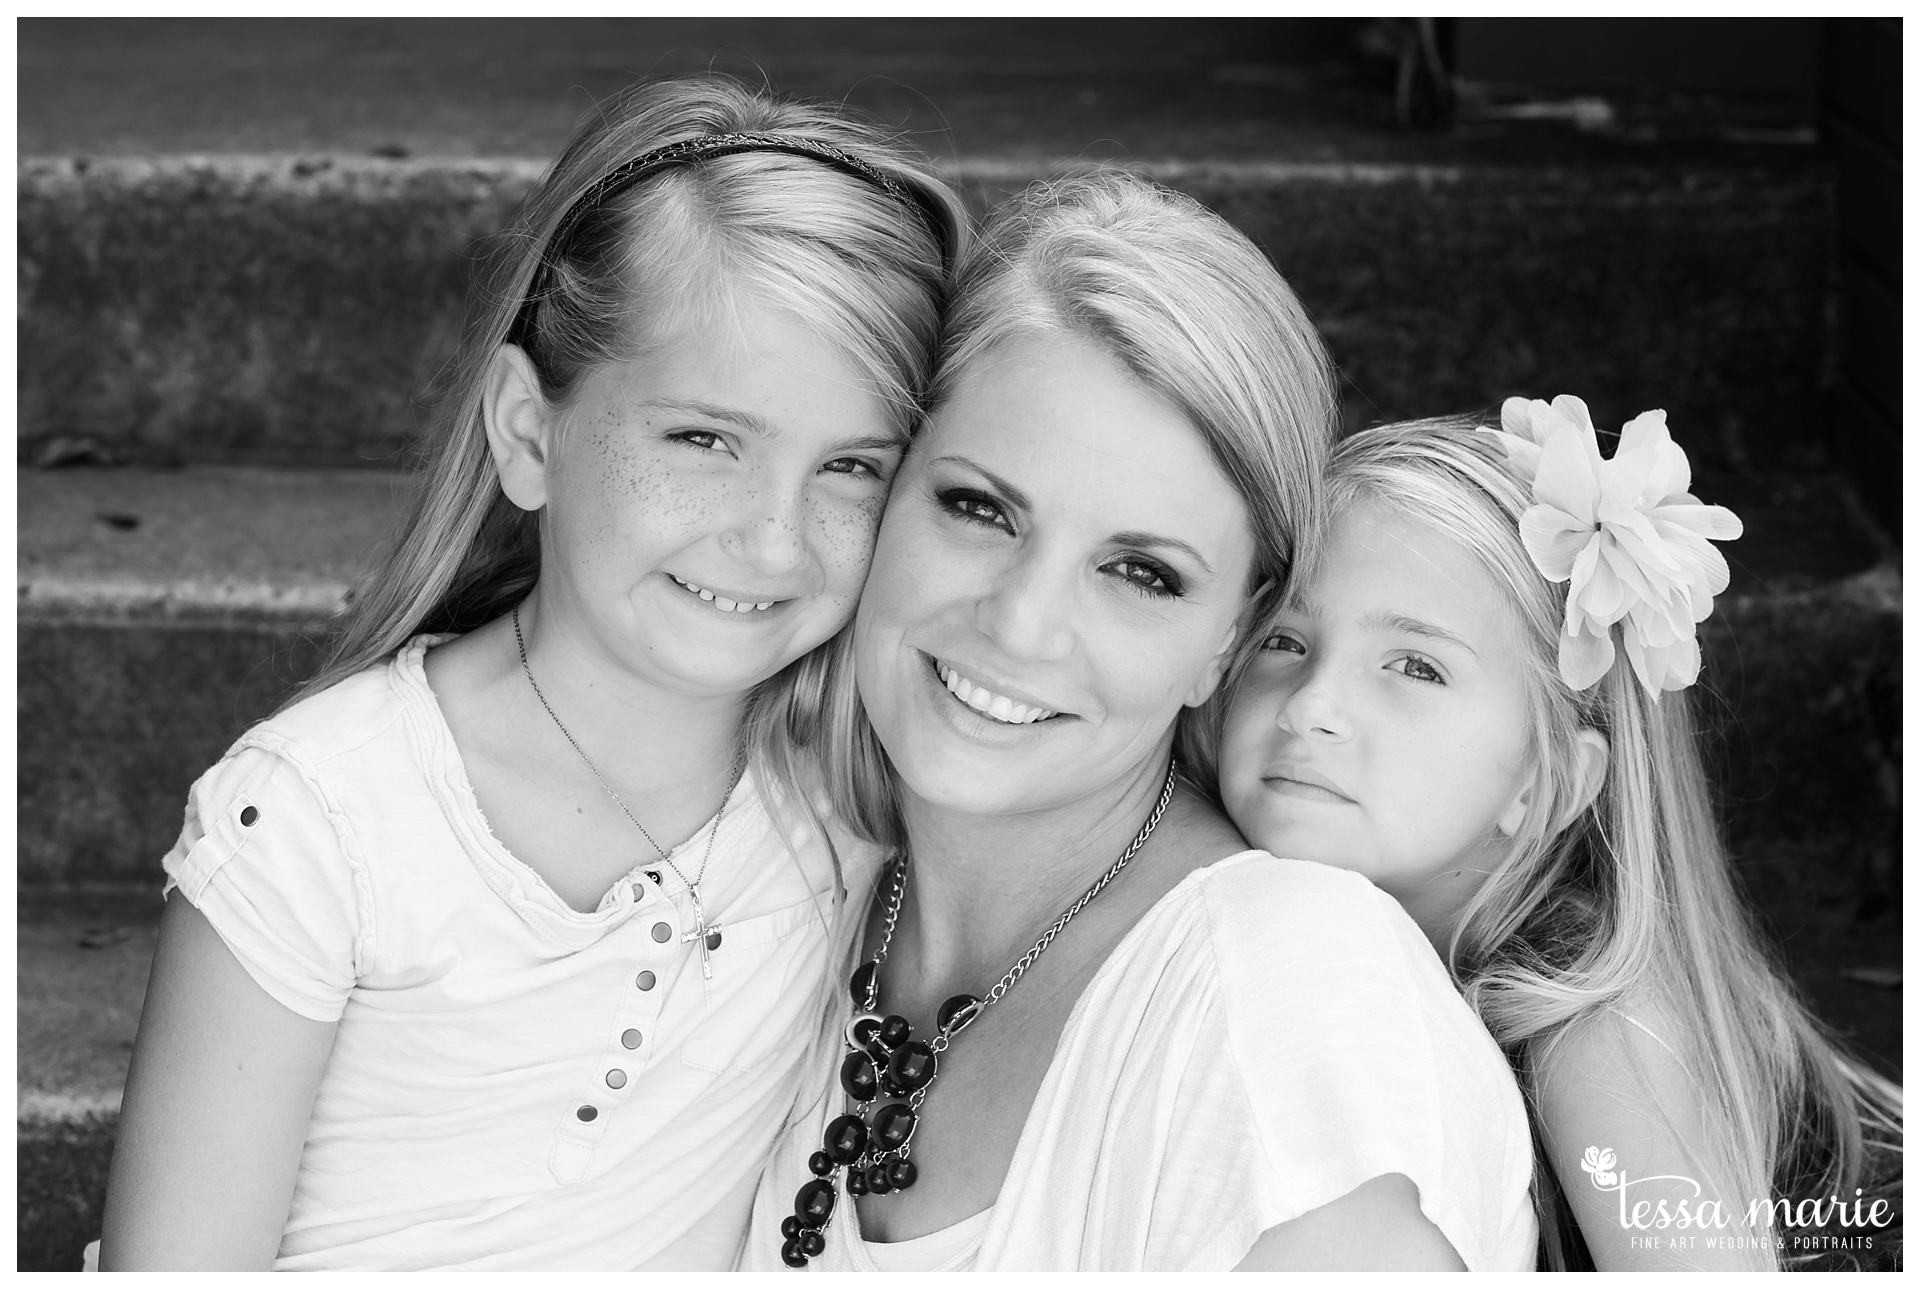 tessa_marie_weddings_legacy_story_focused_wedding_pictures_atlanta_wedding_photographer_family_pictures_portrait_Fine_art_memories_mothers_day_spring_moments_0280